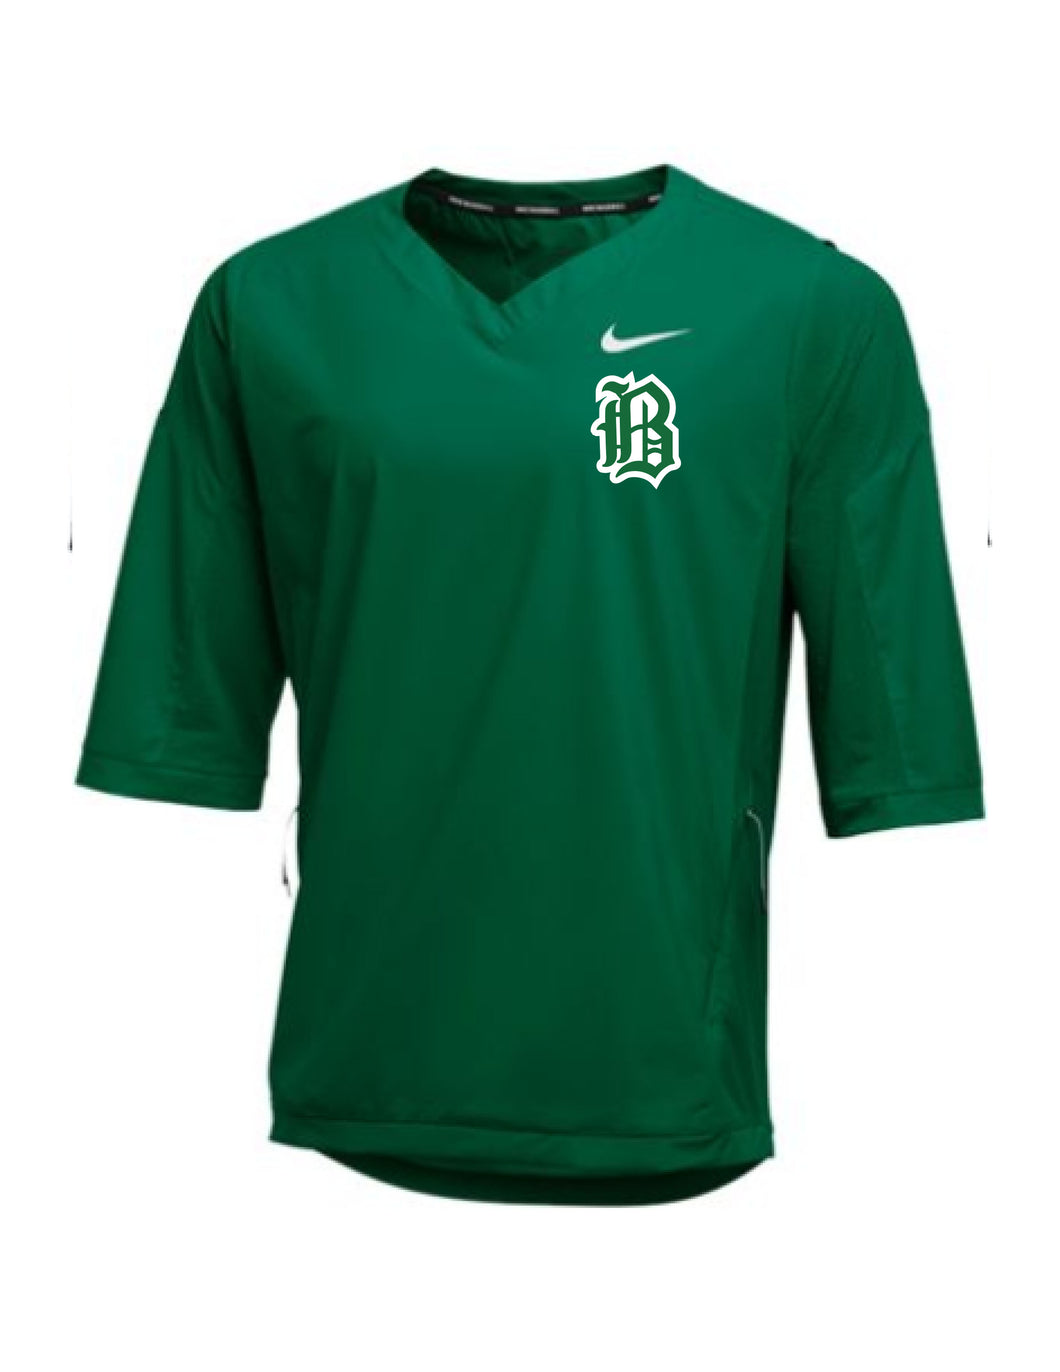 Badin Baseball - Nike 3/4 Hot Jacket (Green)